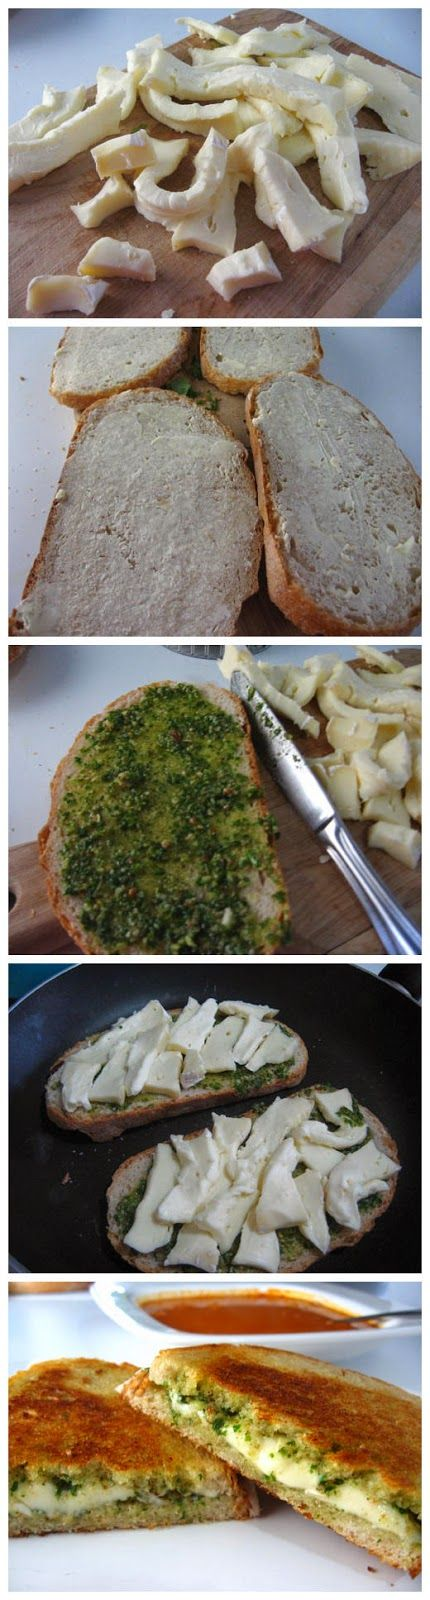 There is nothing better with a hot bowl of soup than a grilled cheese sandwich...this one with pesto looks really good!    Ingredients  Pest...